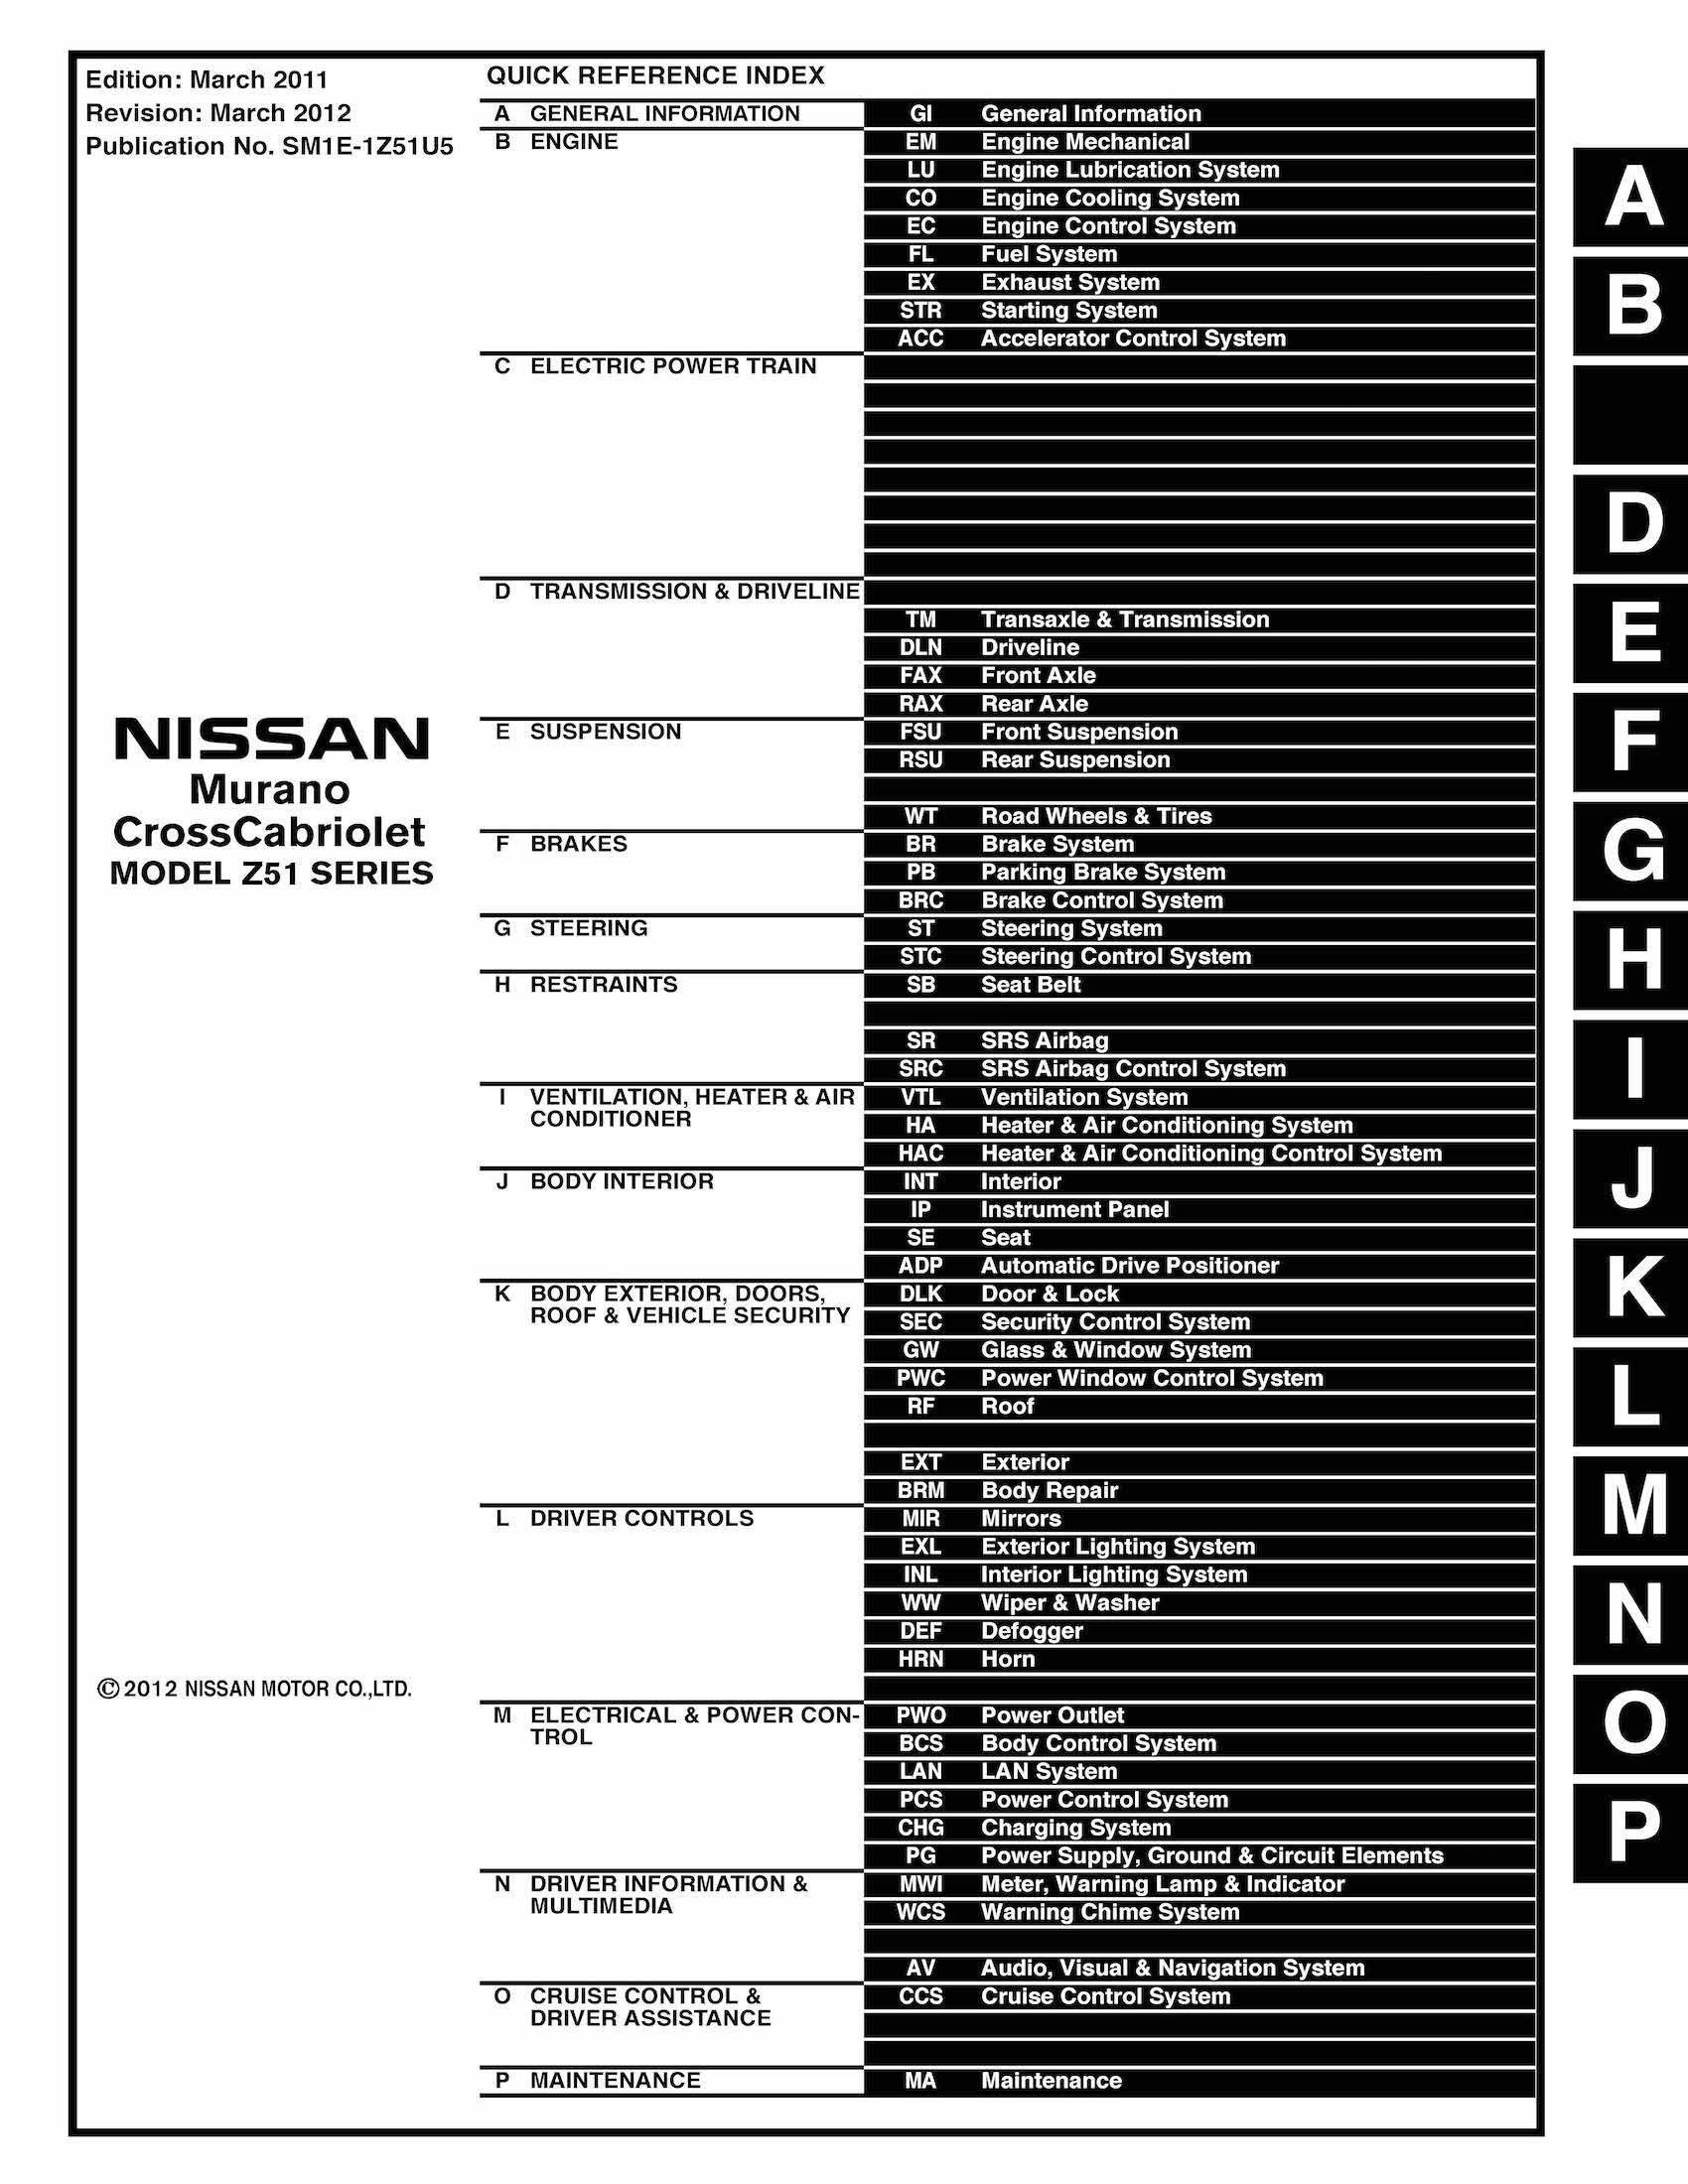 this is oem factory service repair manual for nissan murano including electrical wiring diagrams collision [ 1700 x 2200 Pixel ]